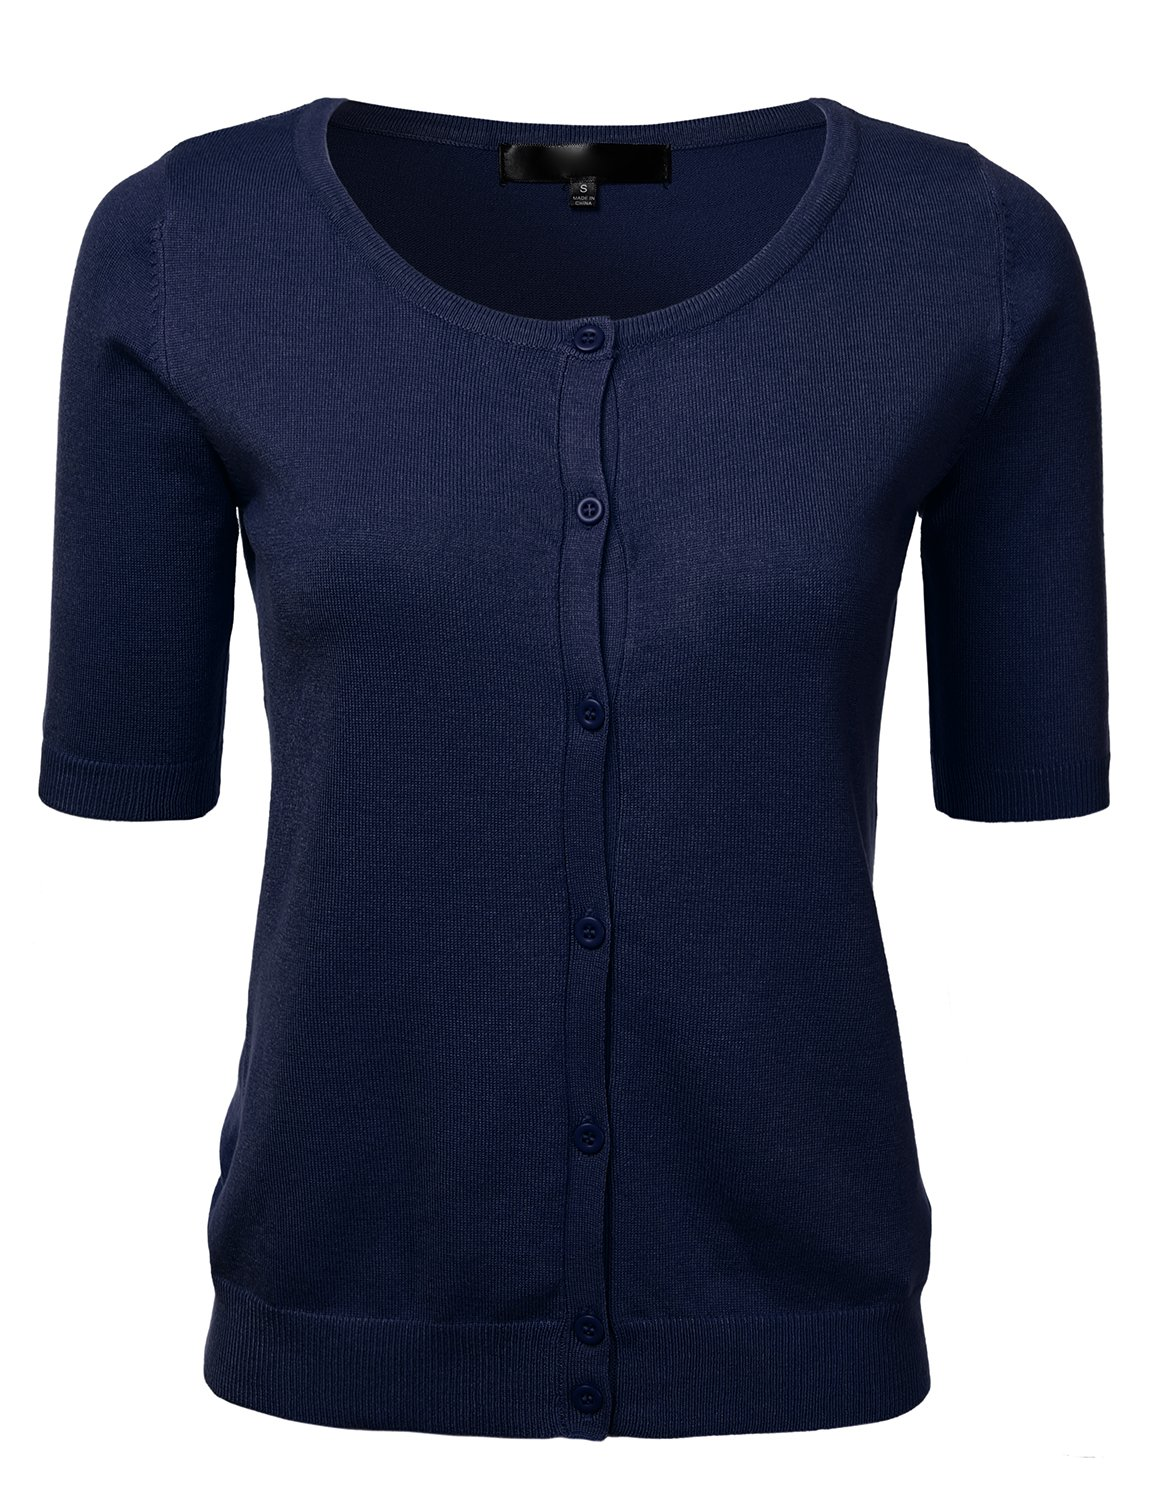 FLORIA Womens Button Down Fitted Short Sleeve Fine Knit Top Cardigan Sweater Navy L